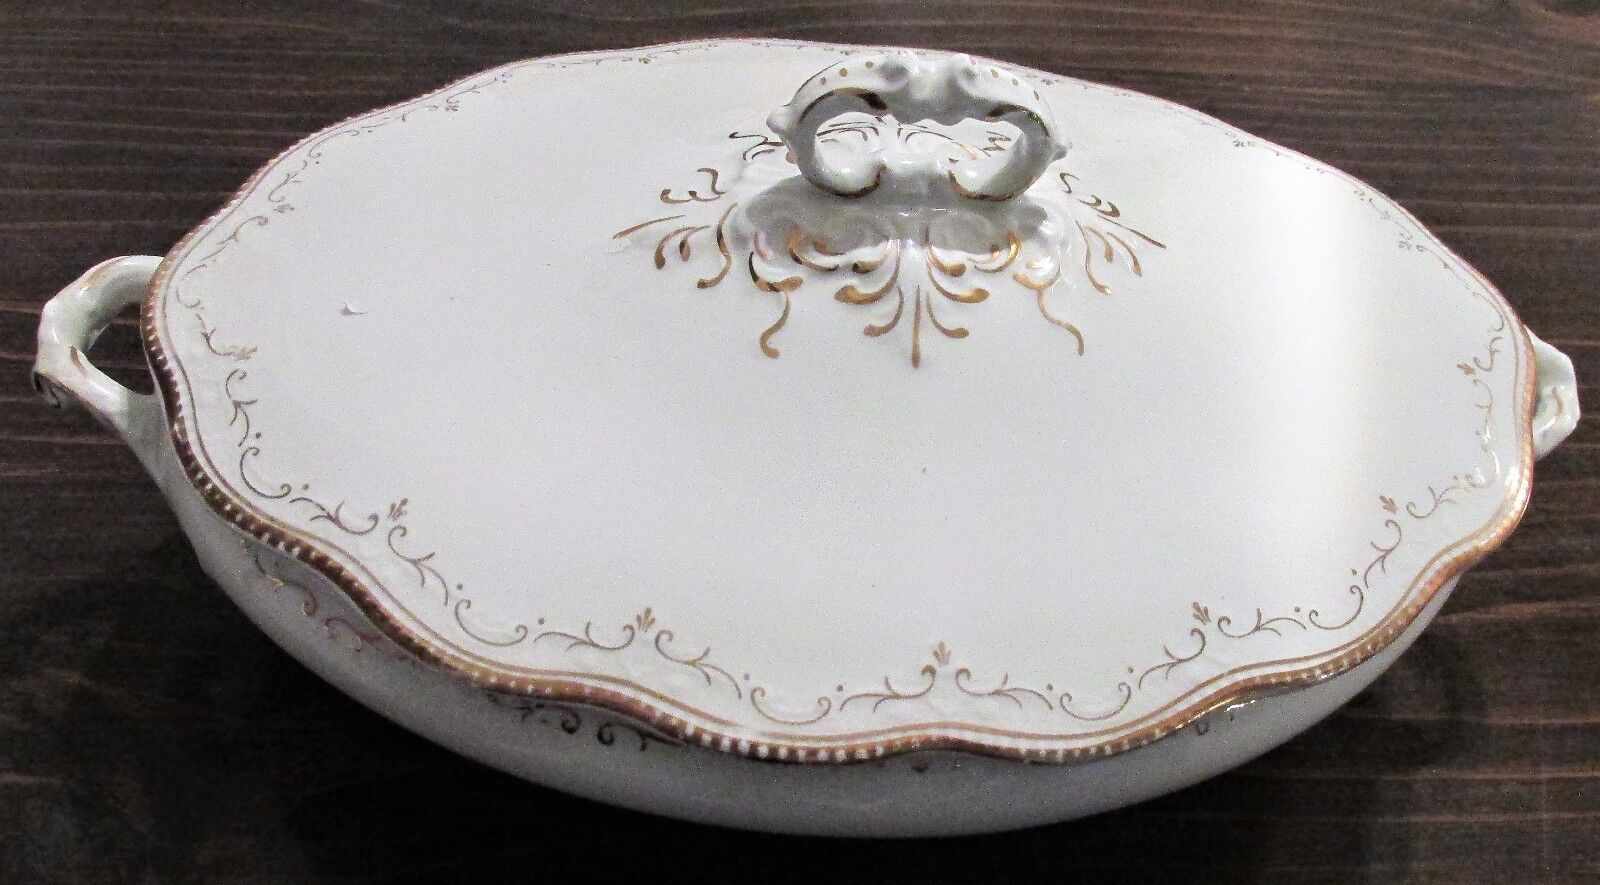 Vintage W. H. Grindley Fine China Casserole Serving Dish Made in England